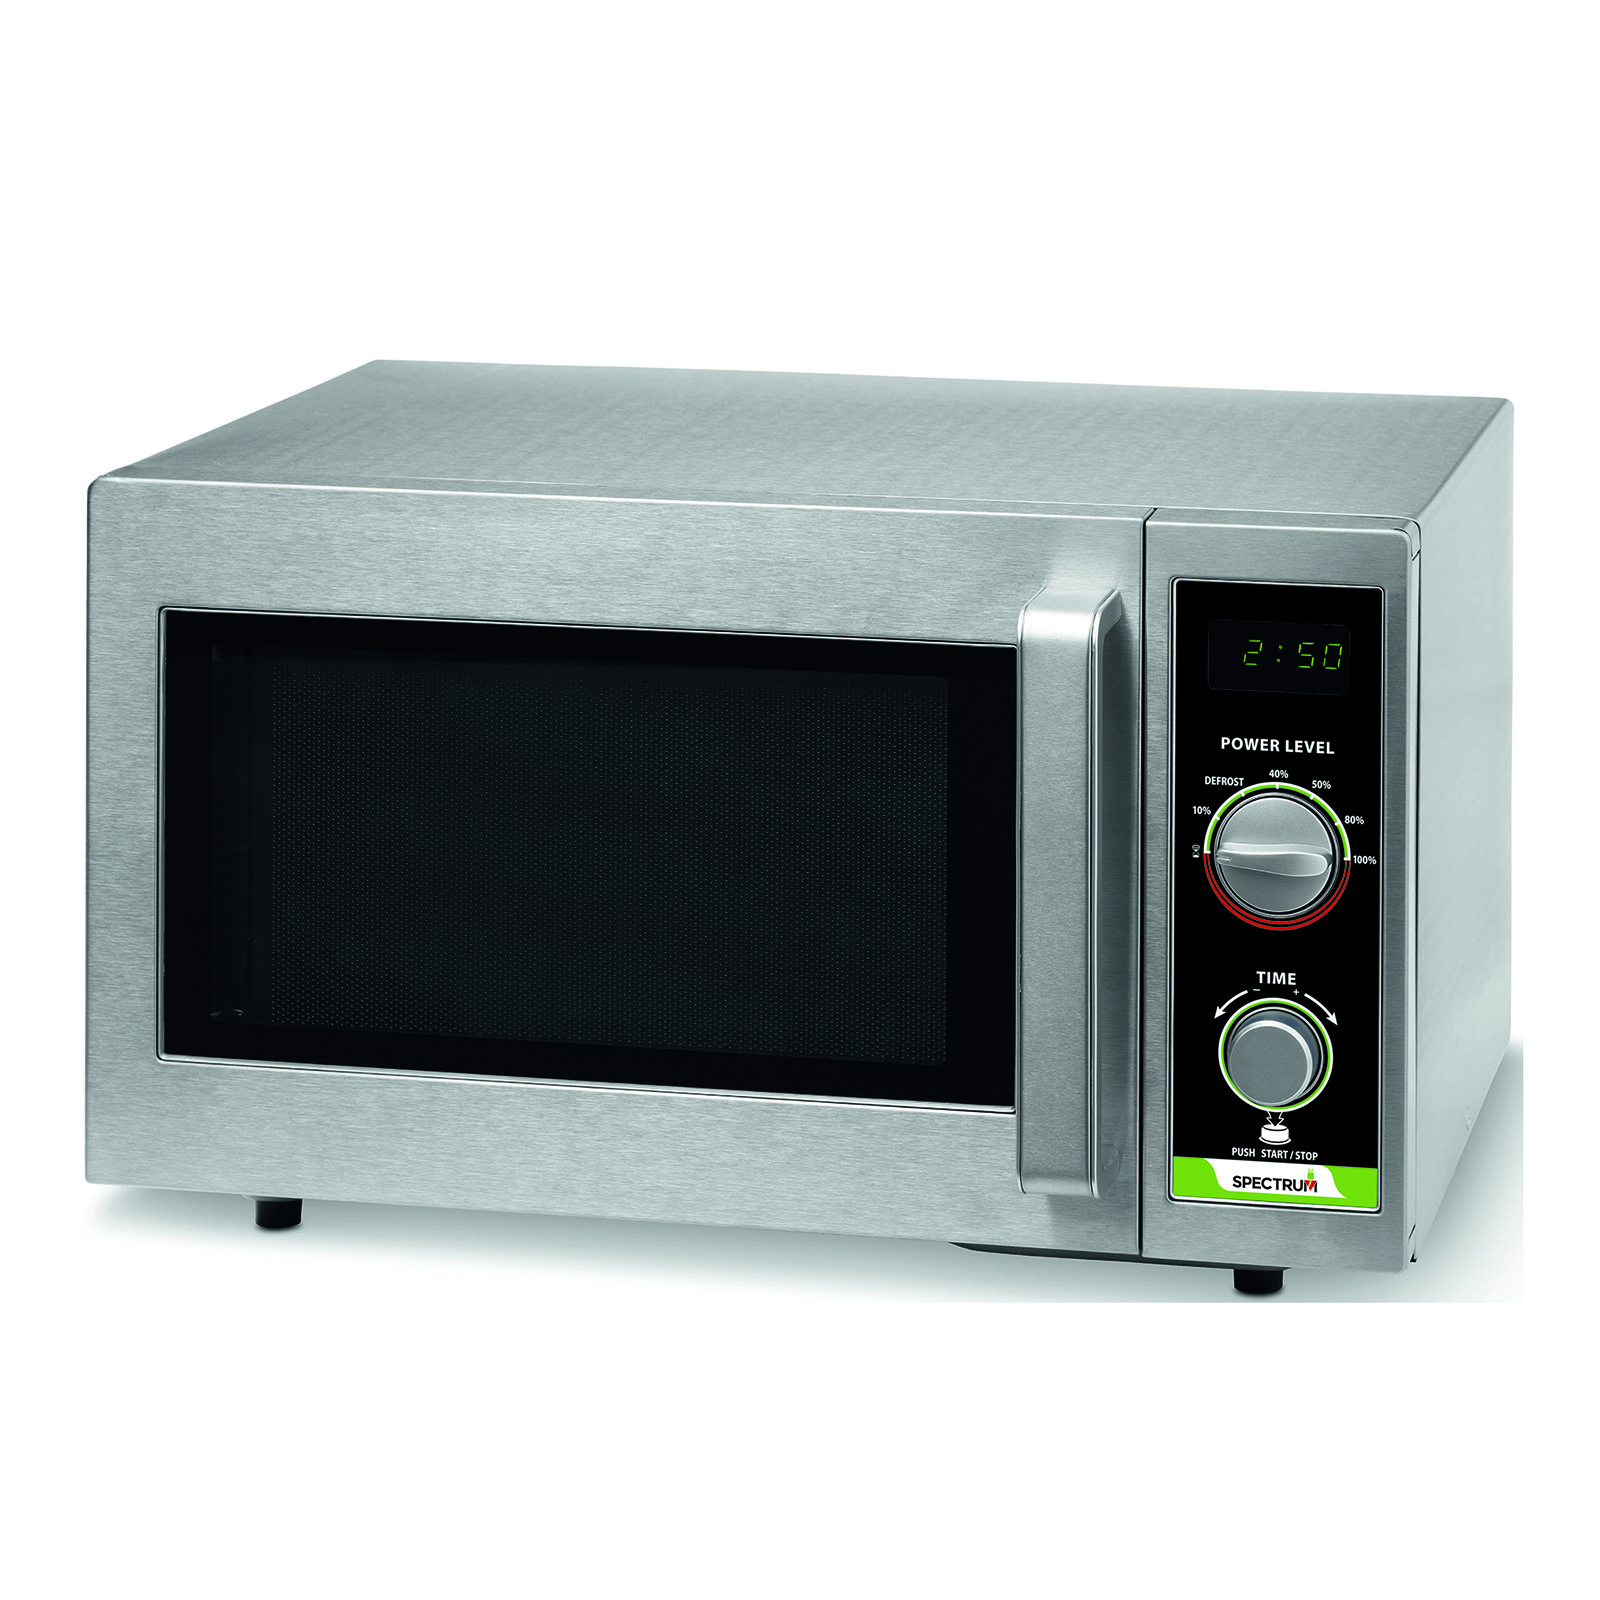 Winco EMW-1000SD microwave oven